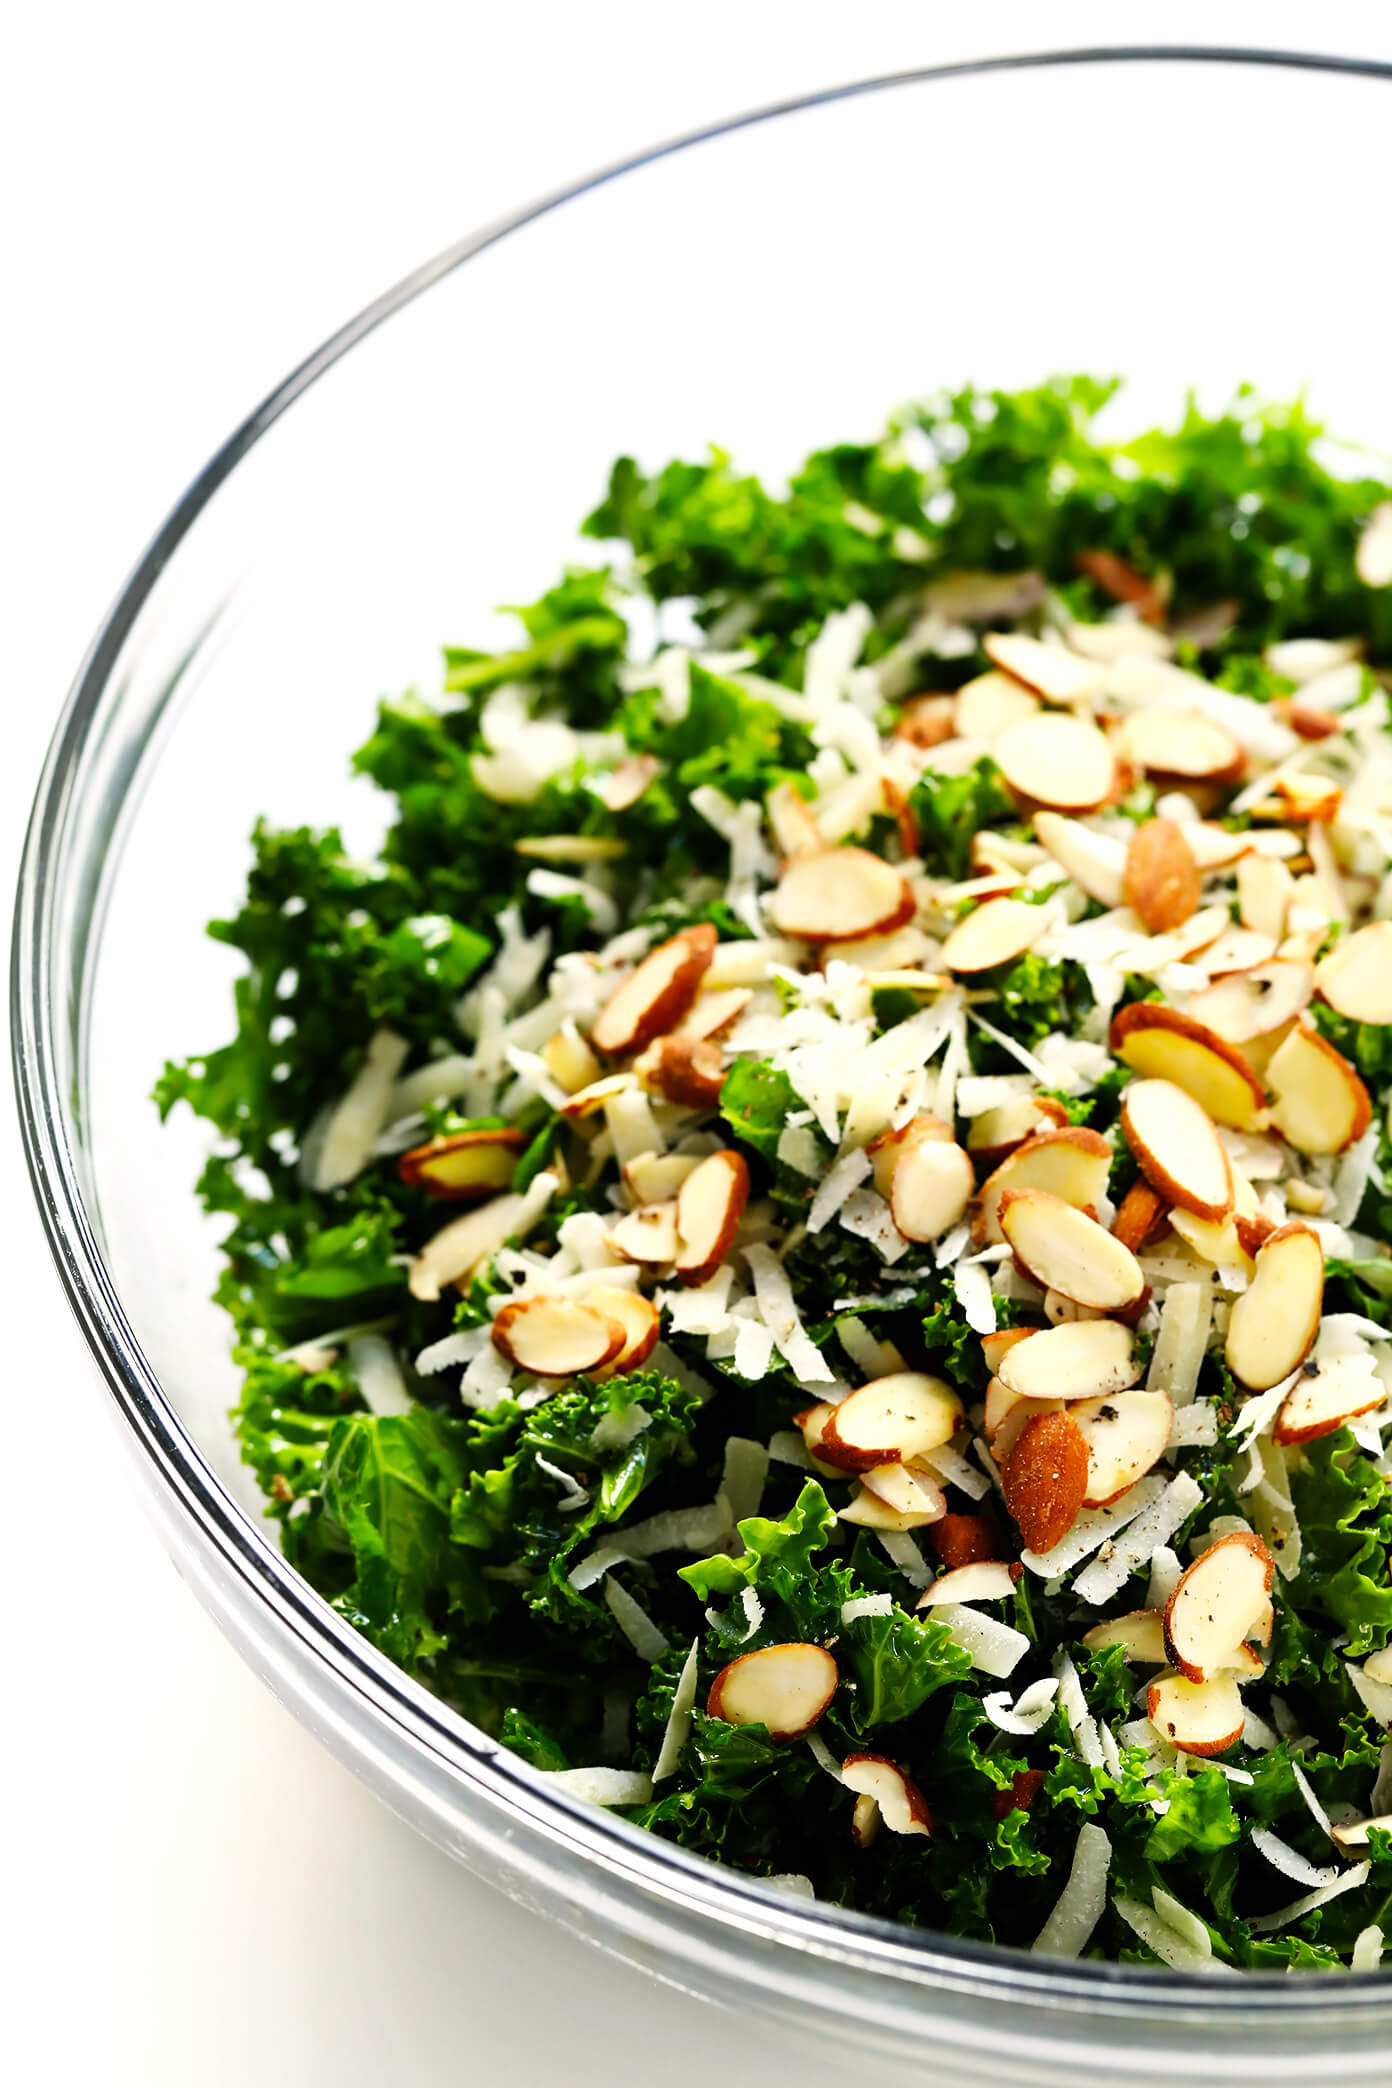 How To Make Kale Salad